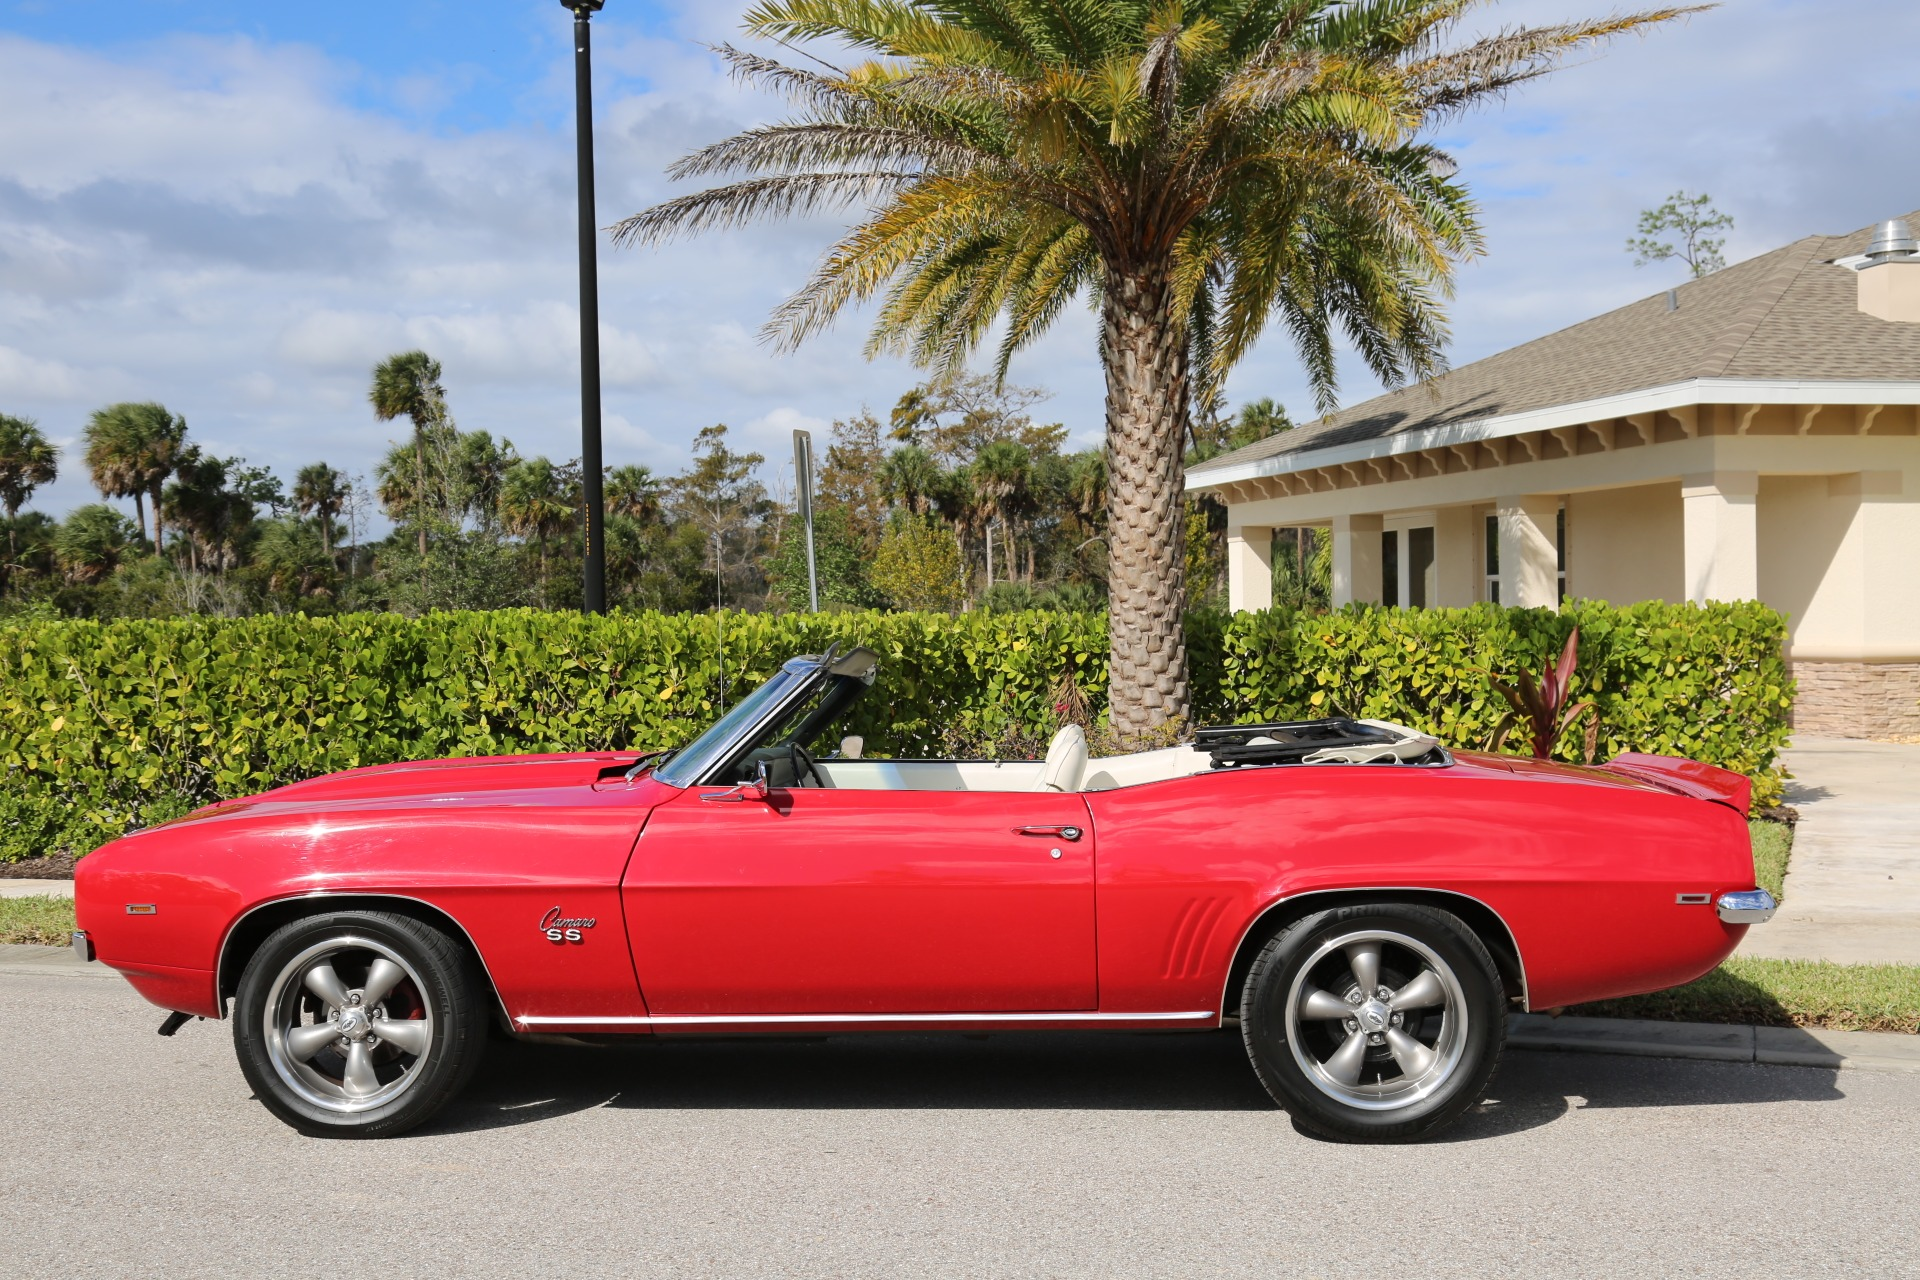 Used 1969 Chevy Camaro Convertible V8 Auto 12 Bolt Rear for sale Sold at Muscle Cars for Sale Inc. in Fort Myers FL 33912 5